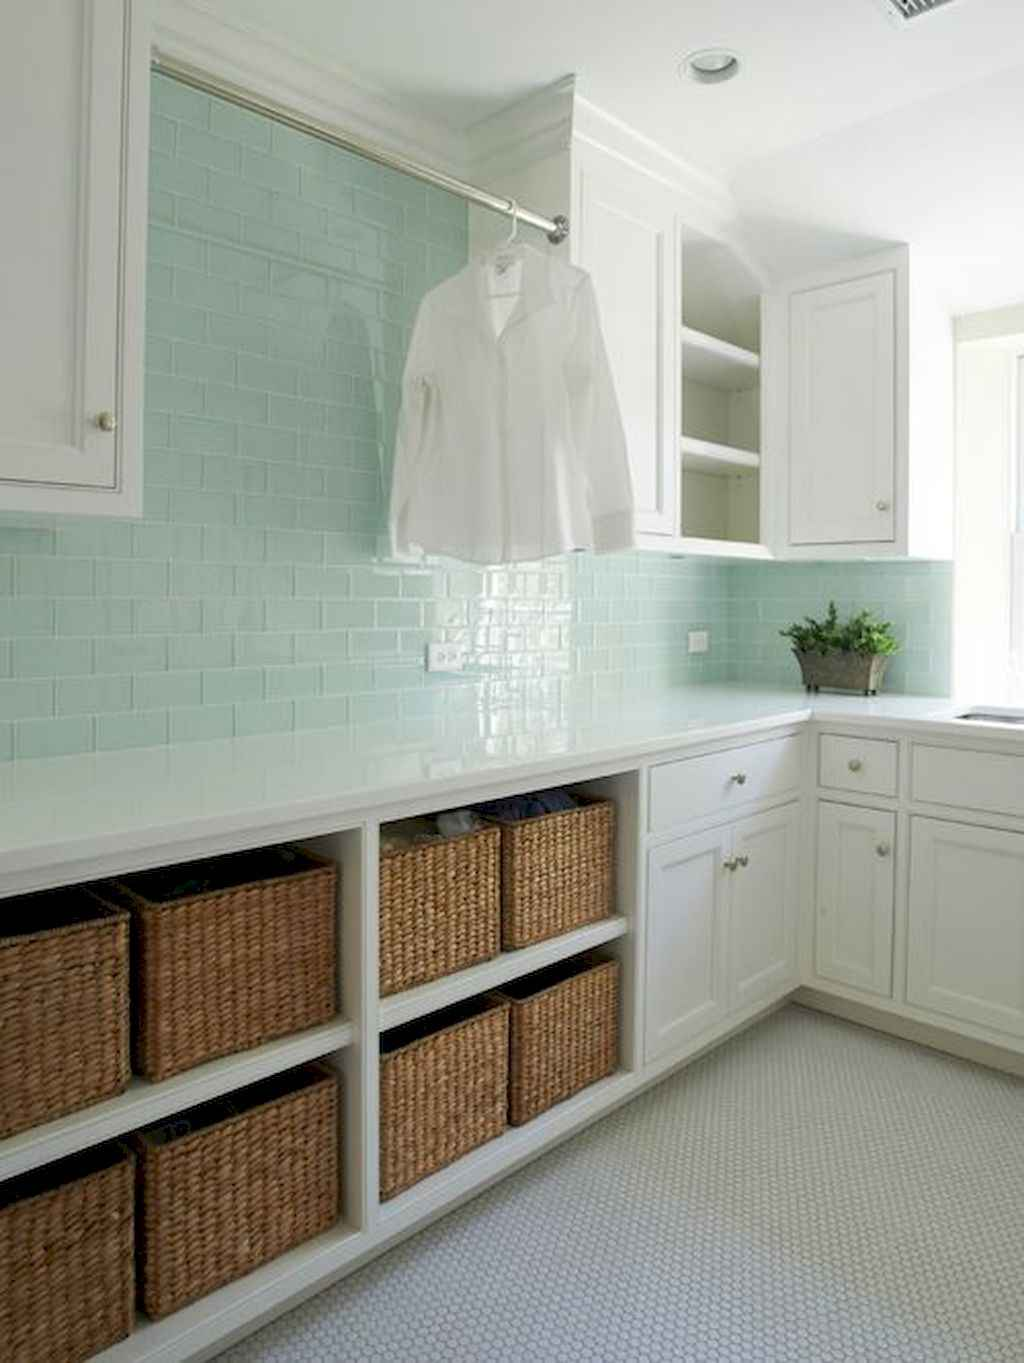 45 Rustic Farmhouse Laundry Room Design Ideas and Makeover (19)